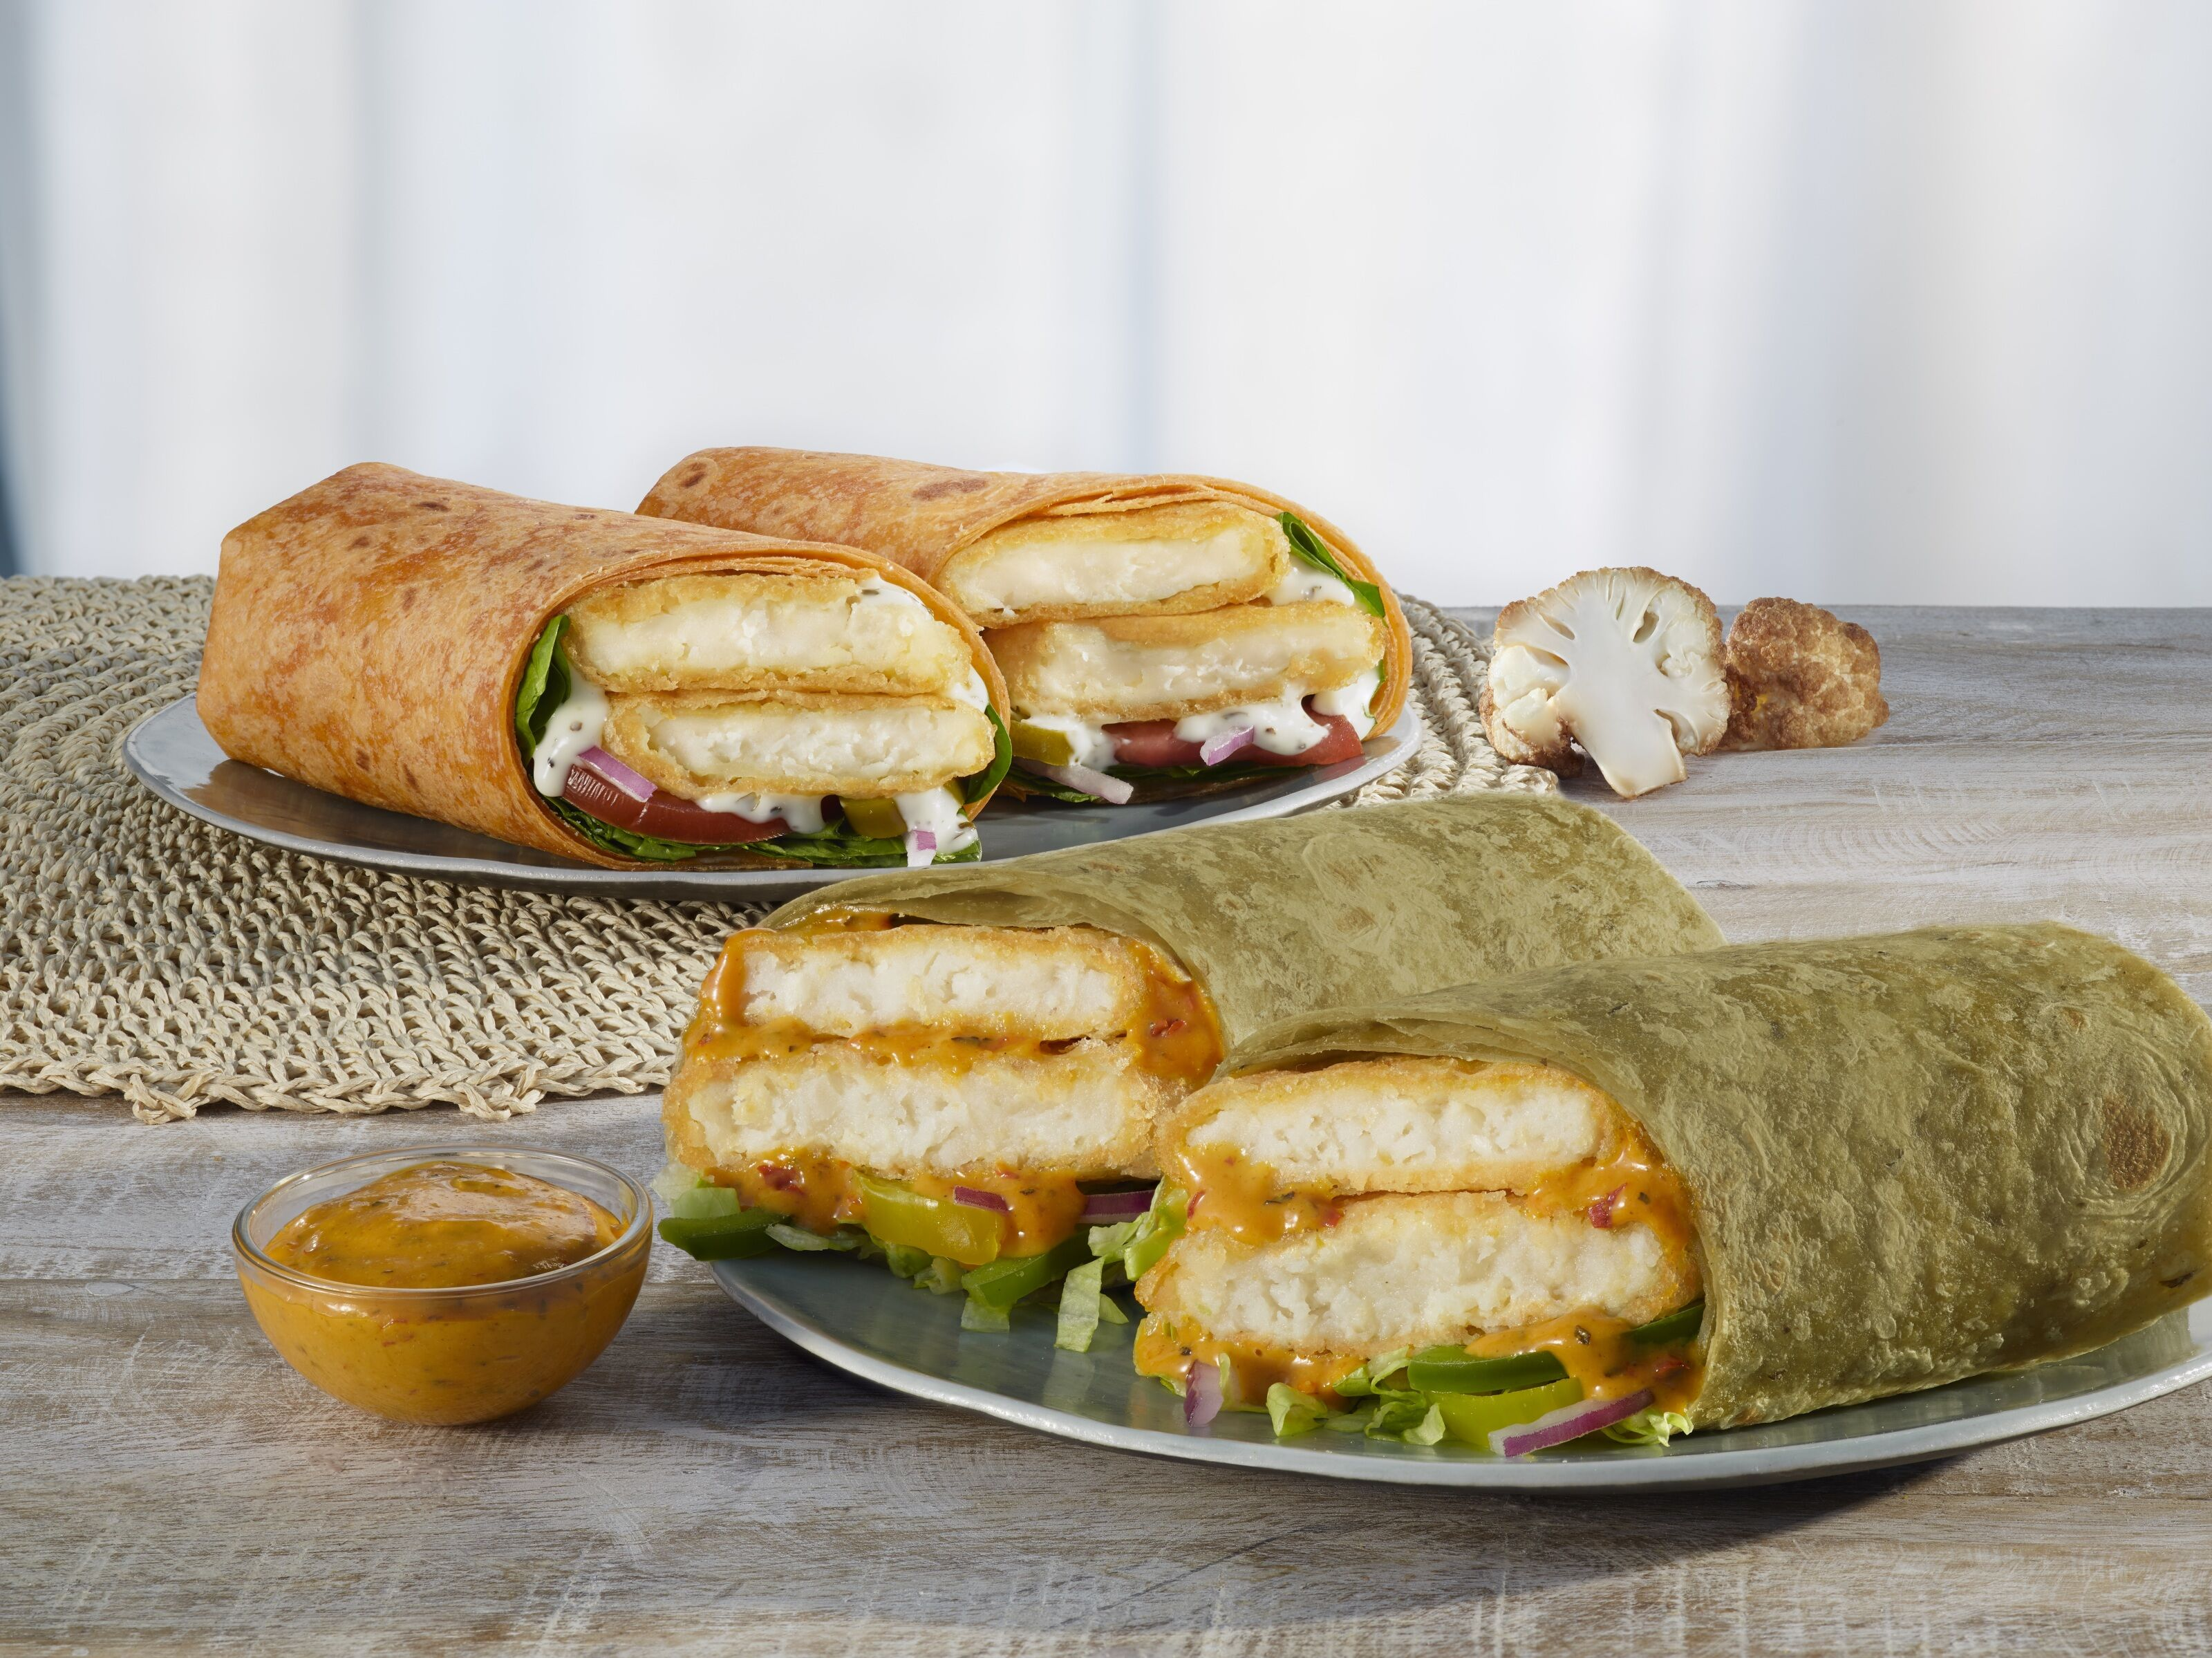 Subway wants you to eat more veggies with new Cauliflower Fritter Signature Wraps